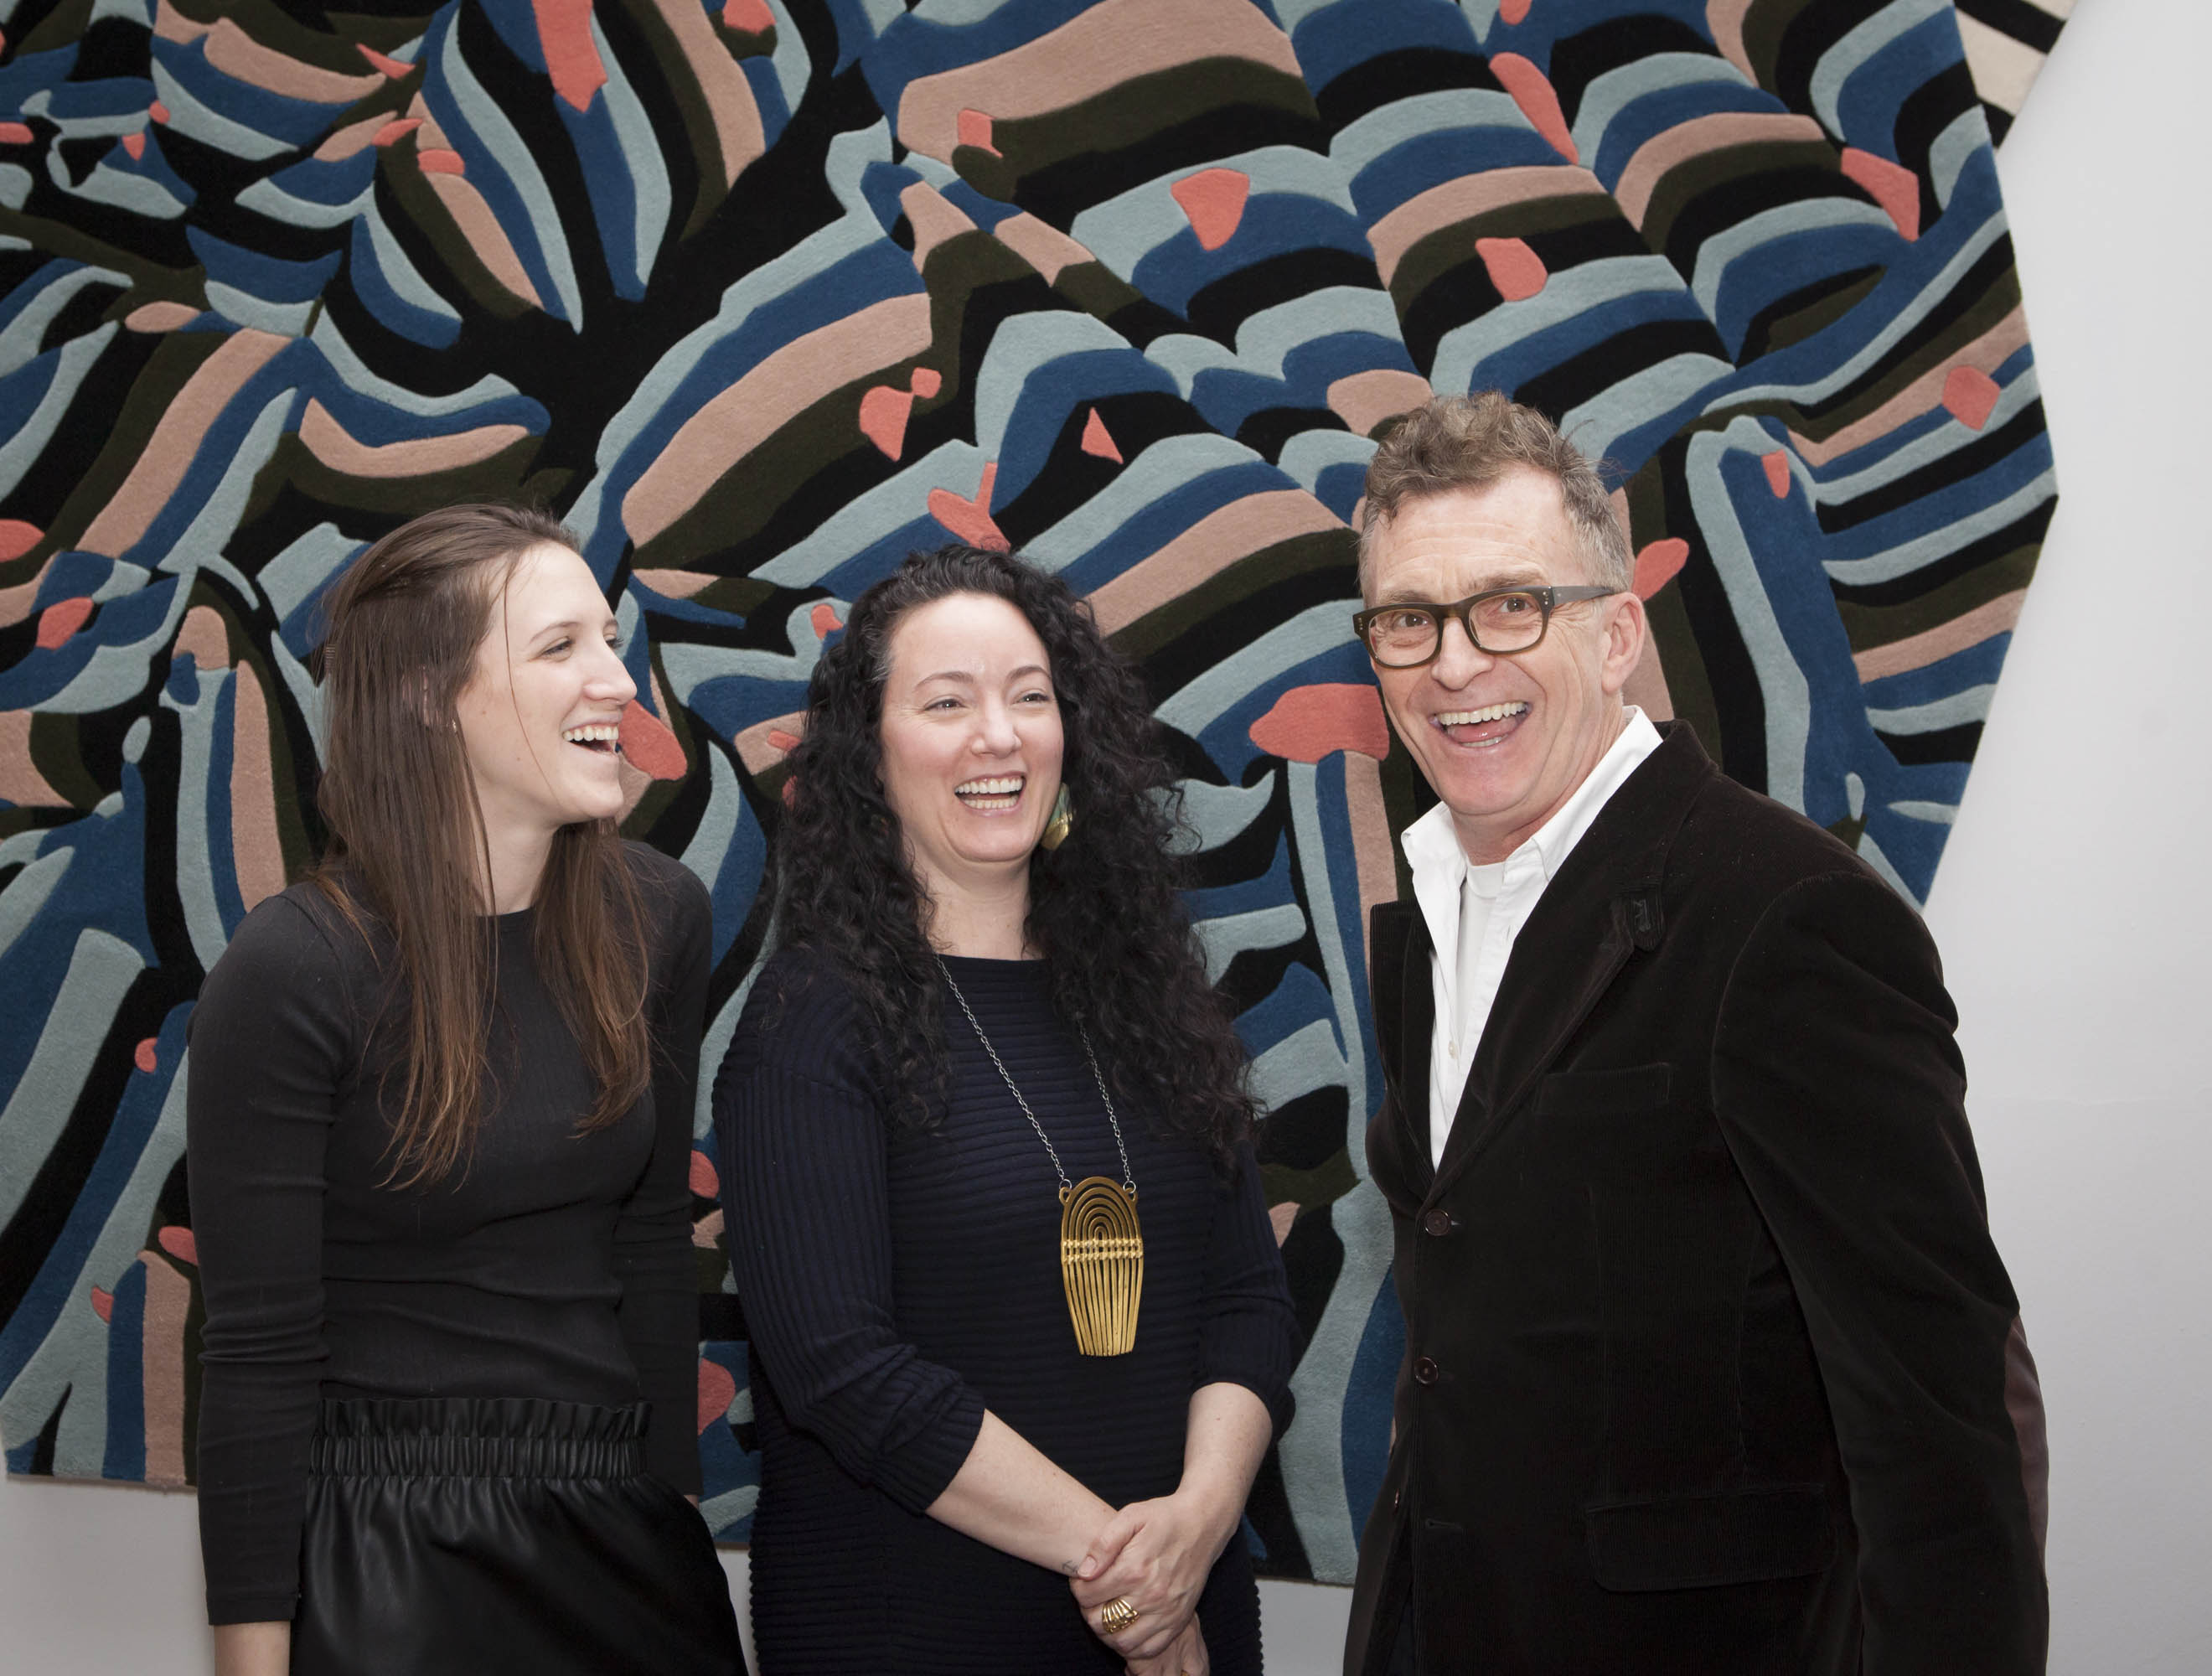 Bonnie Hoeker, Lora Appleton and Glenn Gissler share a laugh at the end of another great Emerging Designer Event.